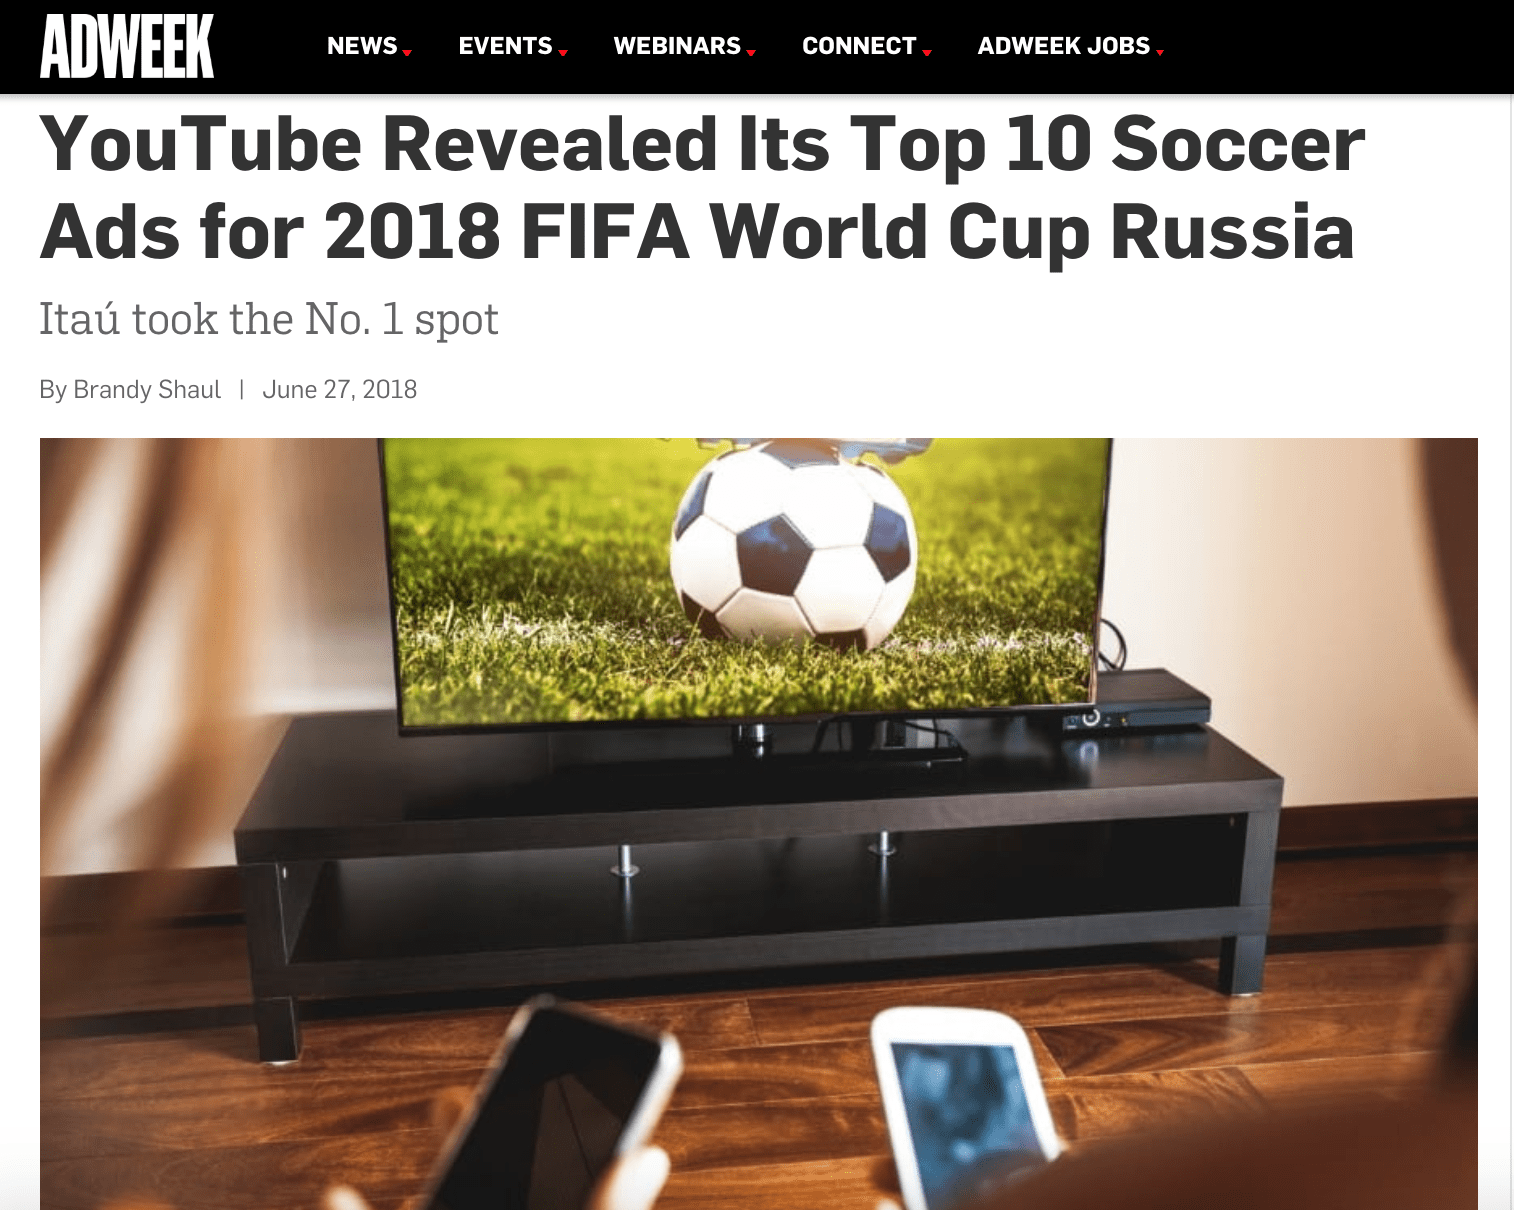 Top 10 Soccer Ads